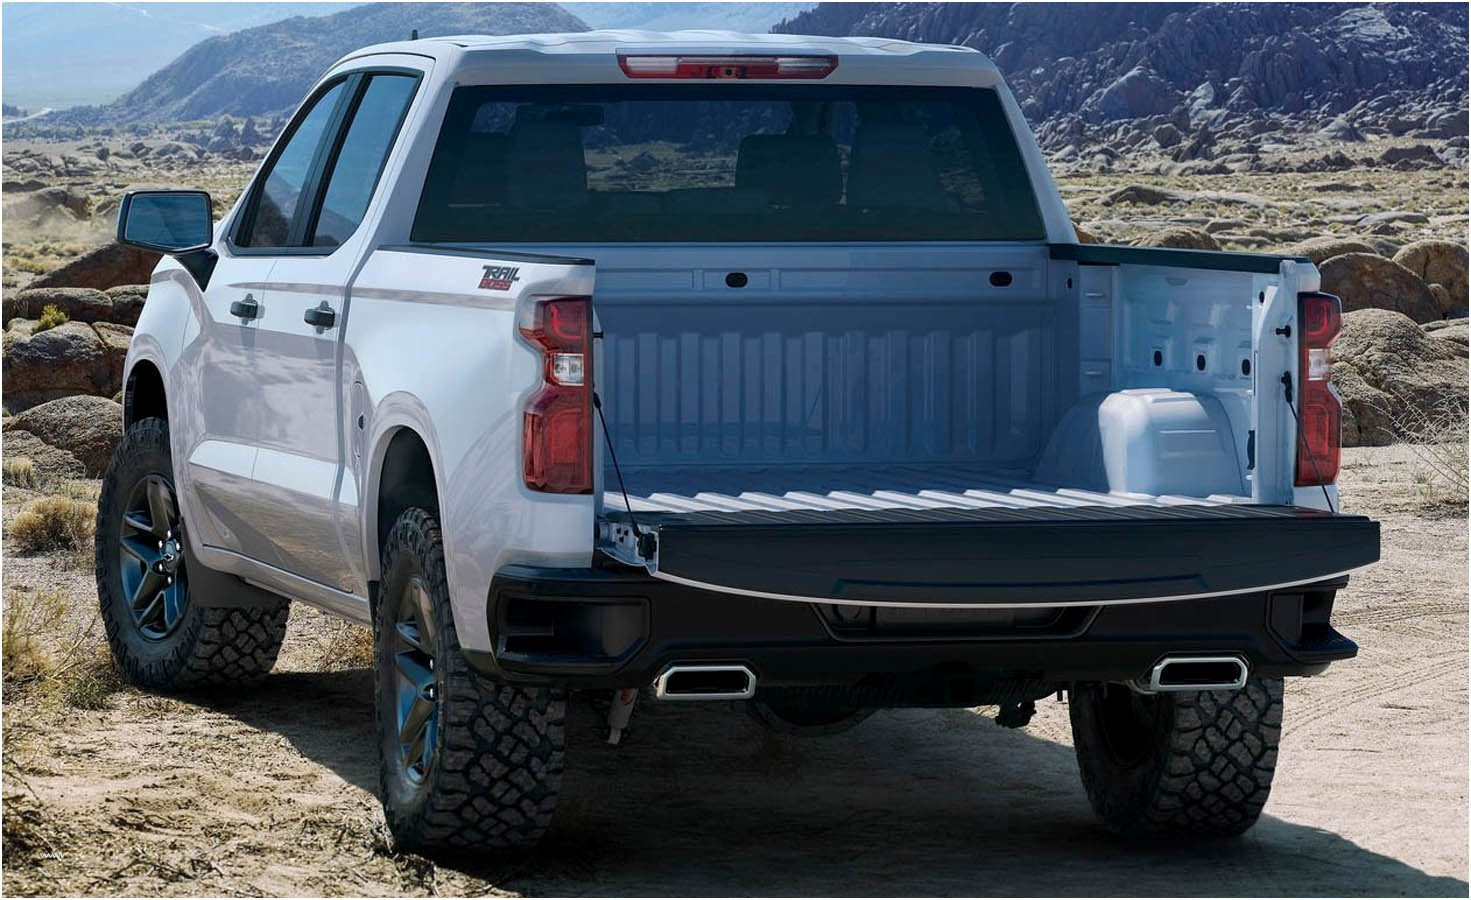 63 The Best 2020 Chevy Blazer K 5 Redesign and Concept